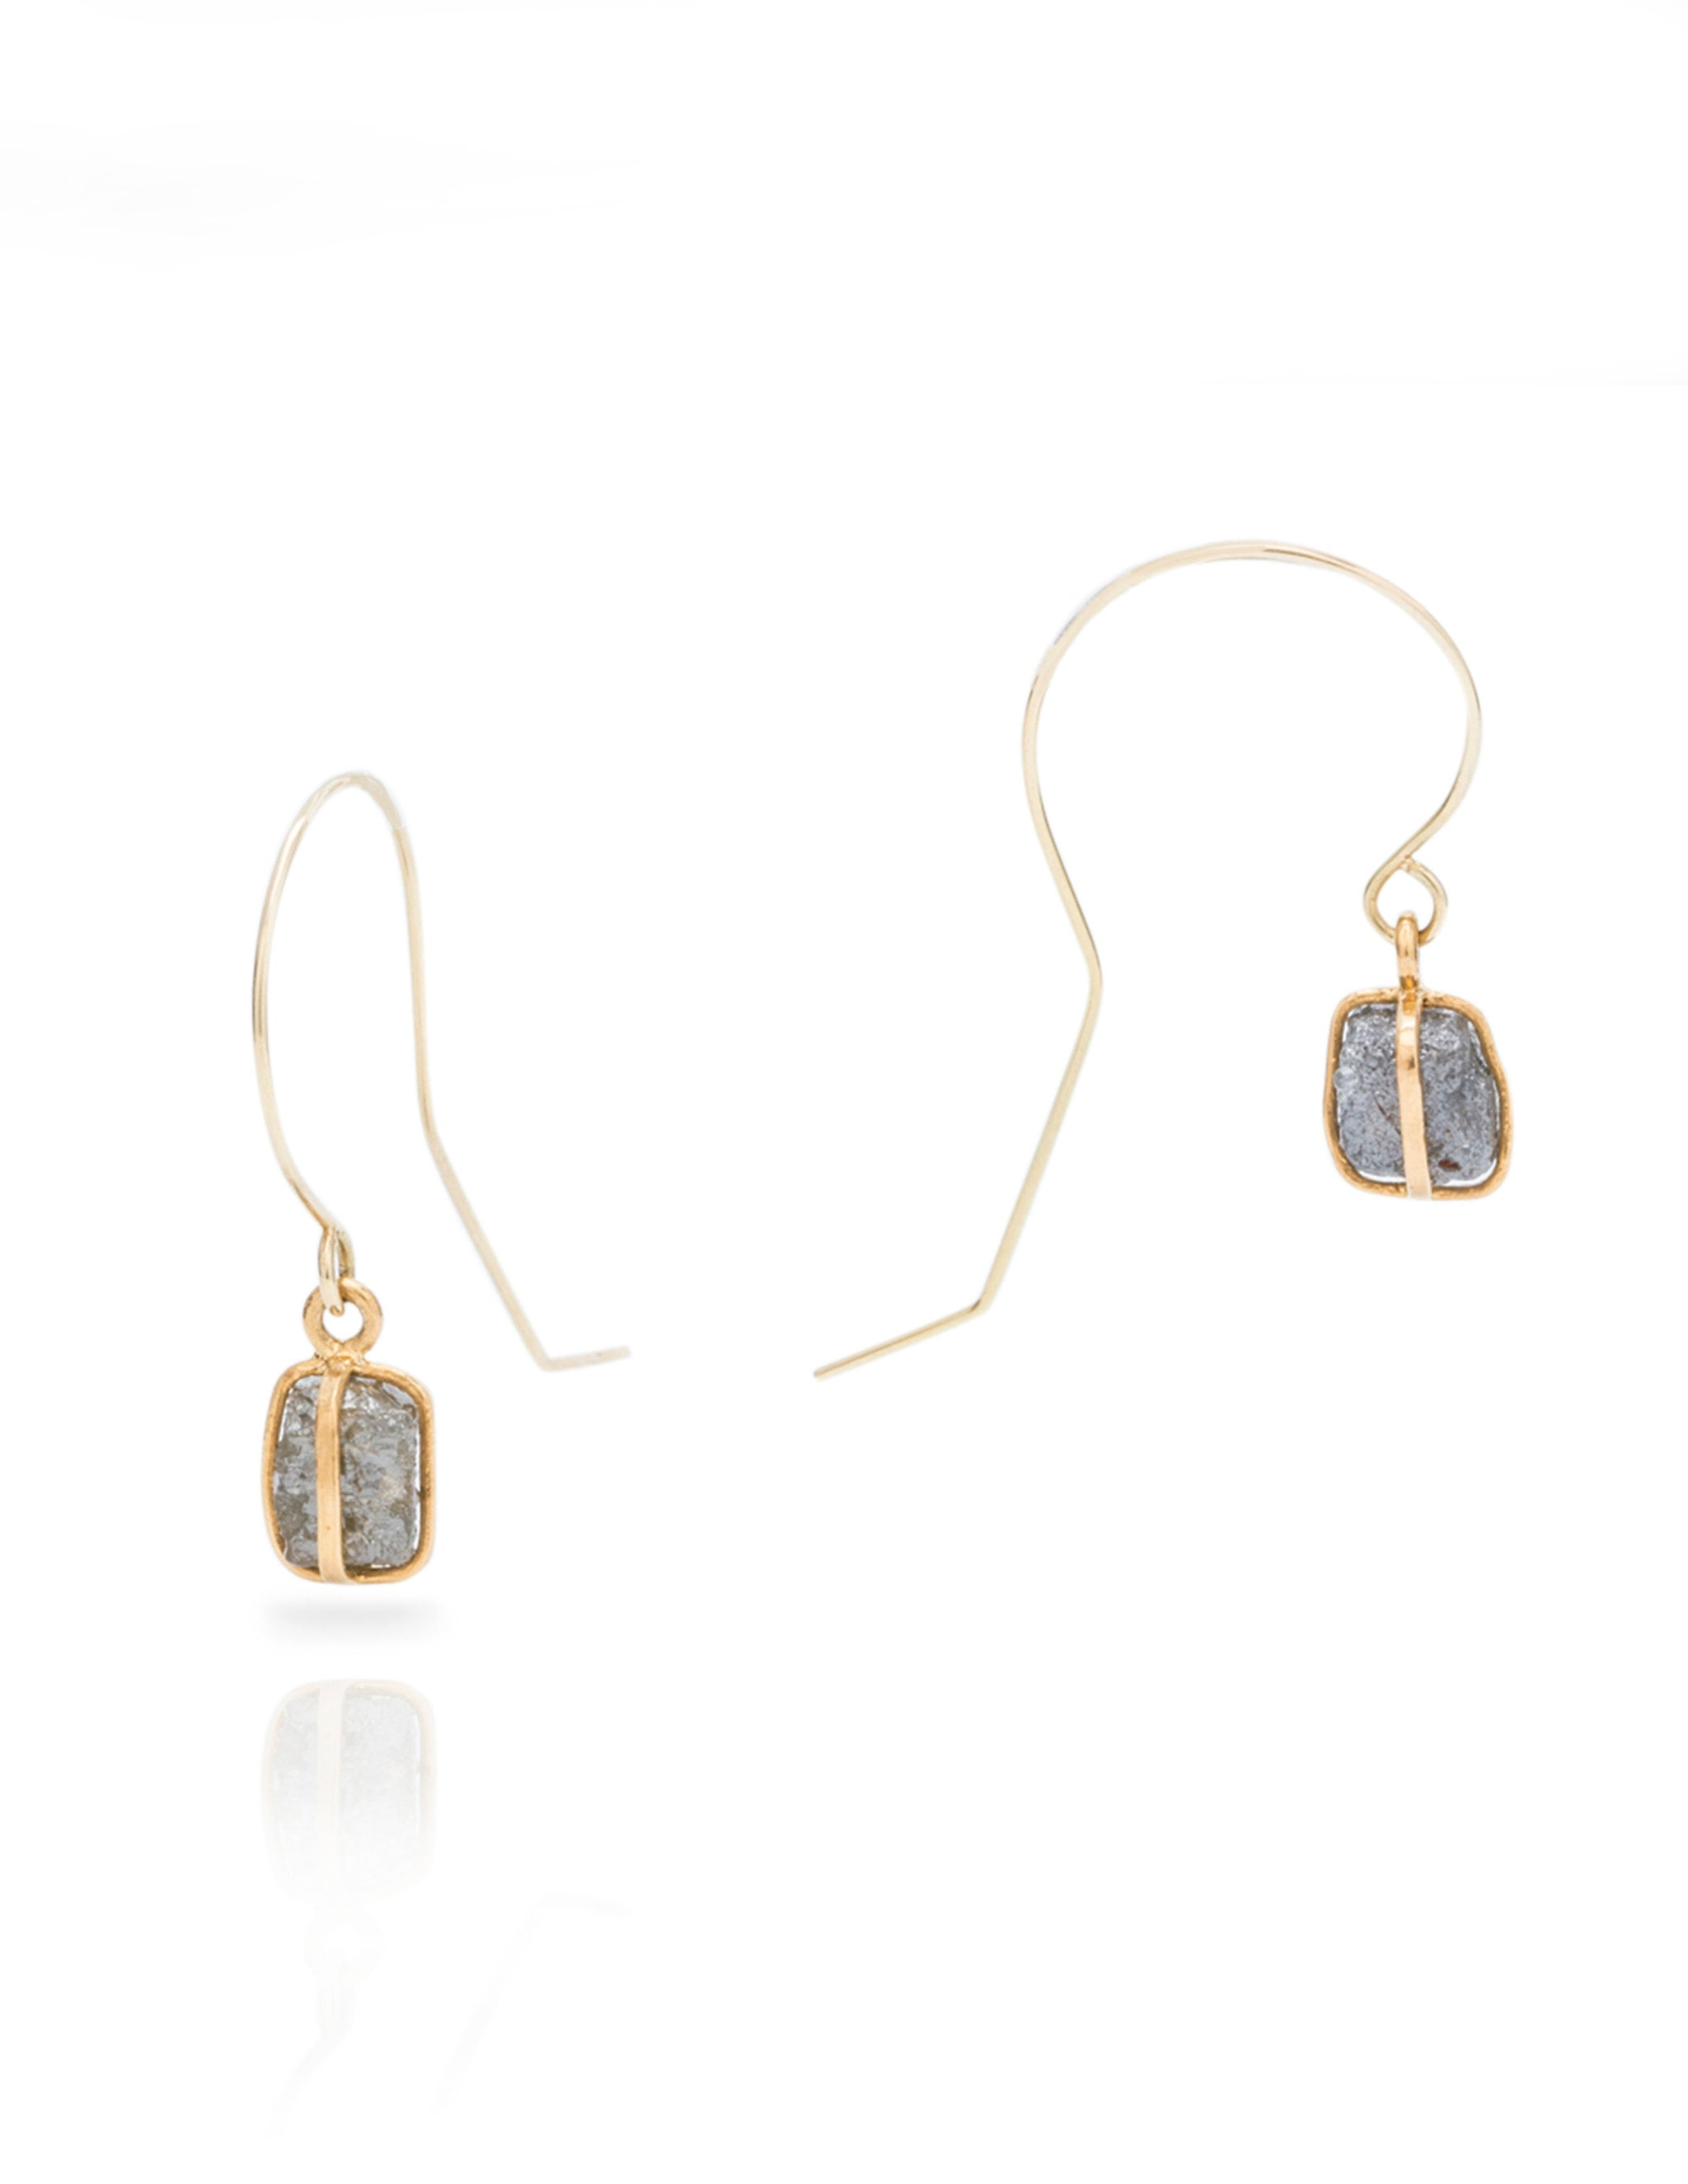 Rustic Diamond Drop Earrings - Charles Koll Jewellers